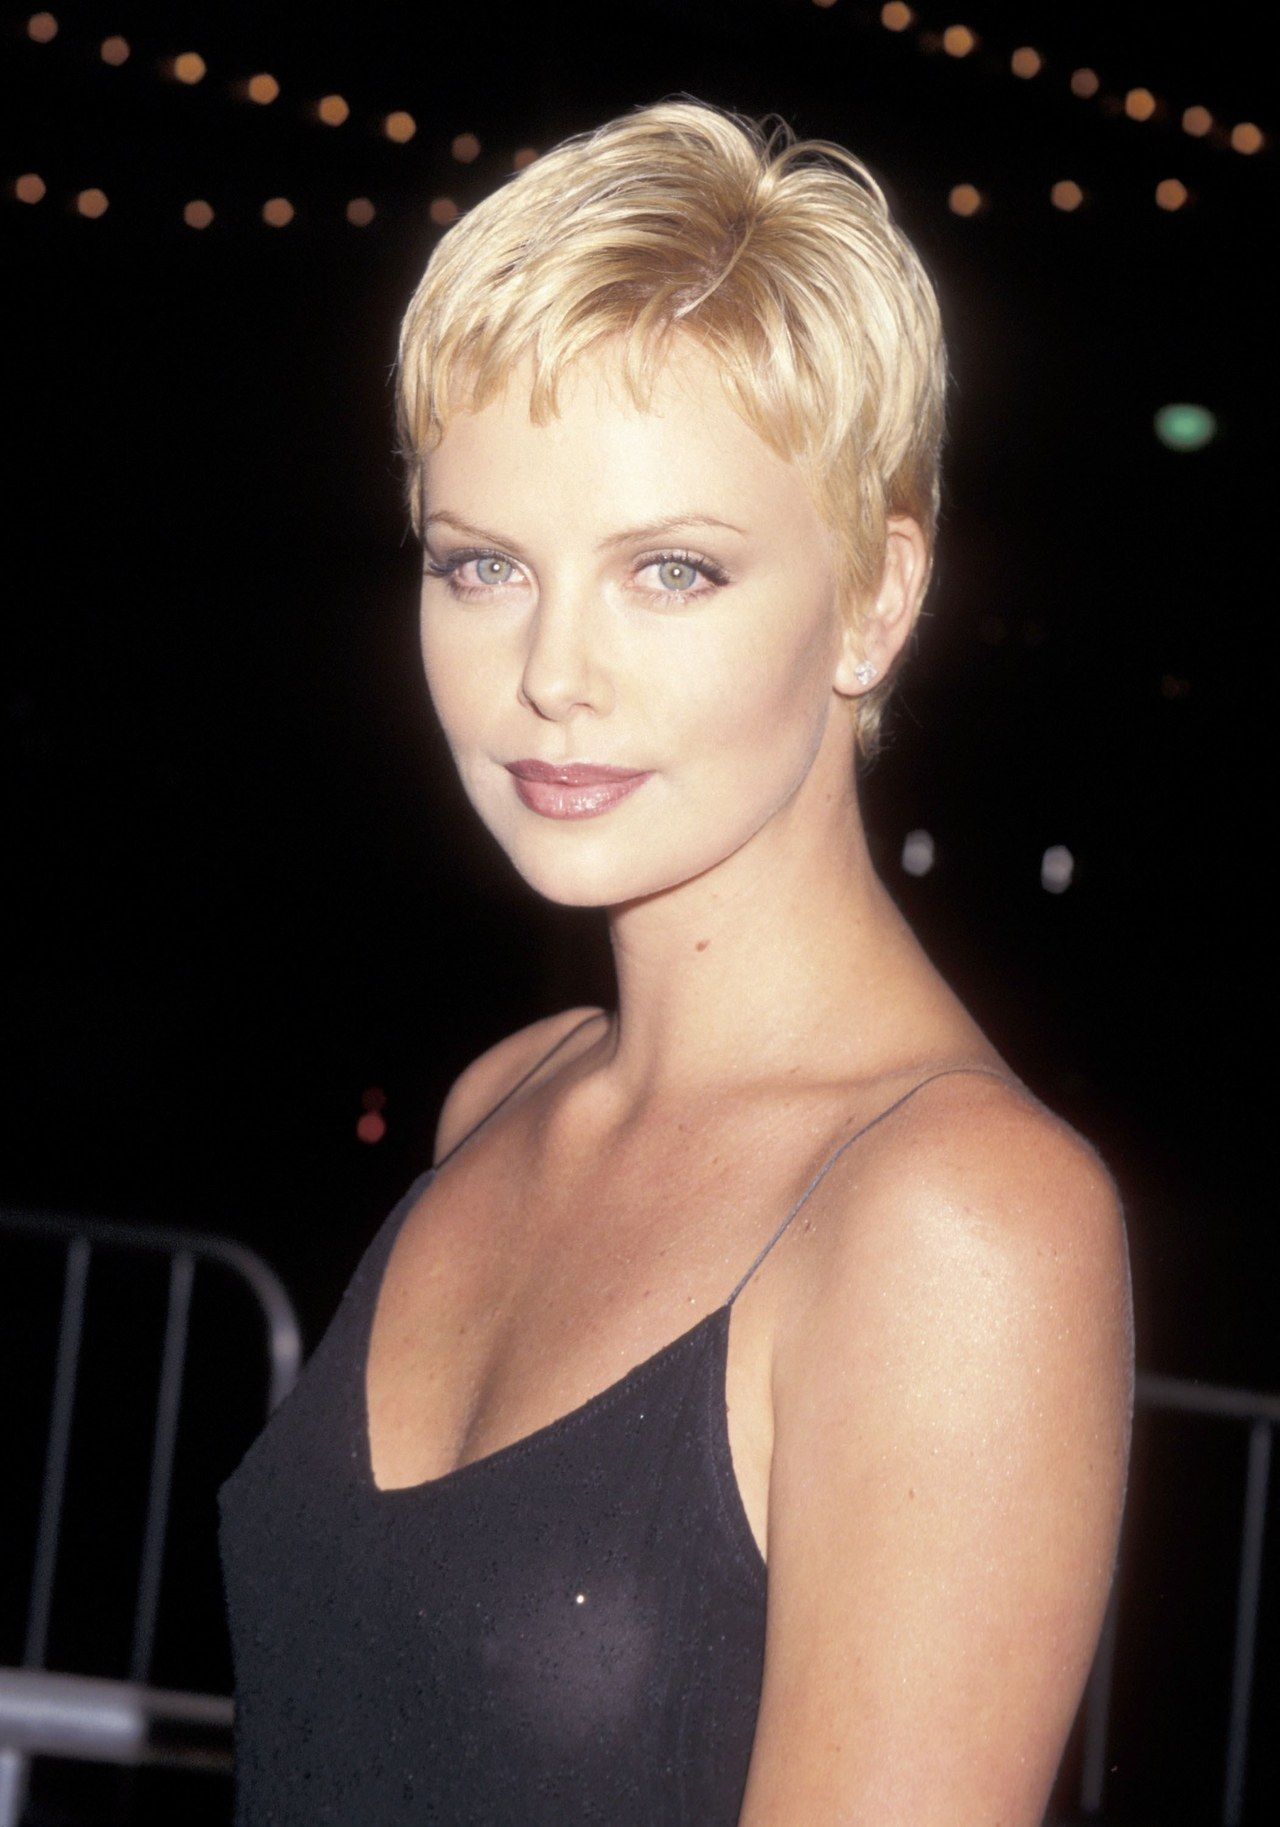 Charlize Theron Tumblr Charlize Theron Pinterest Charlize - Hairstyles for short hair kenya